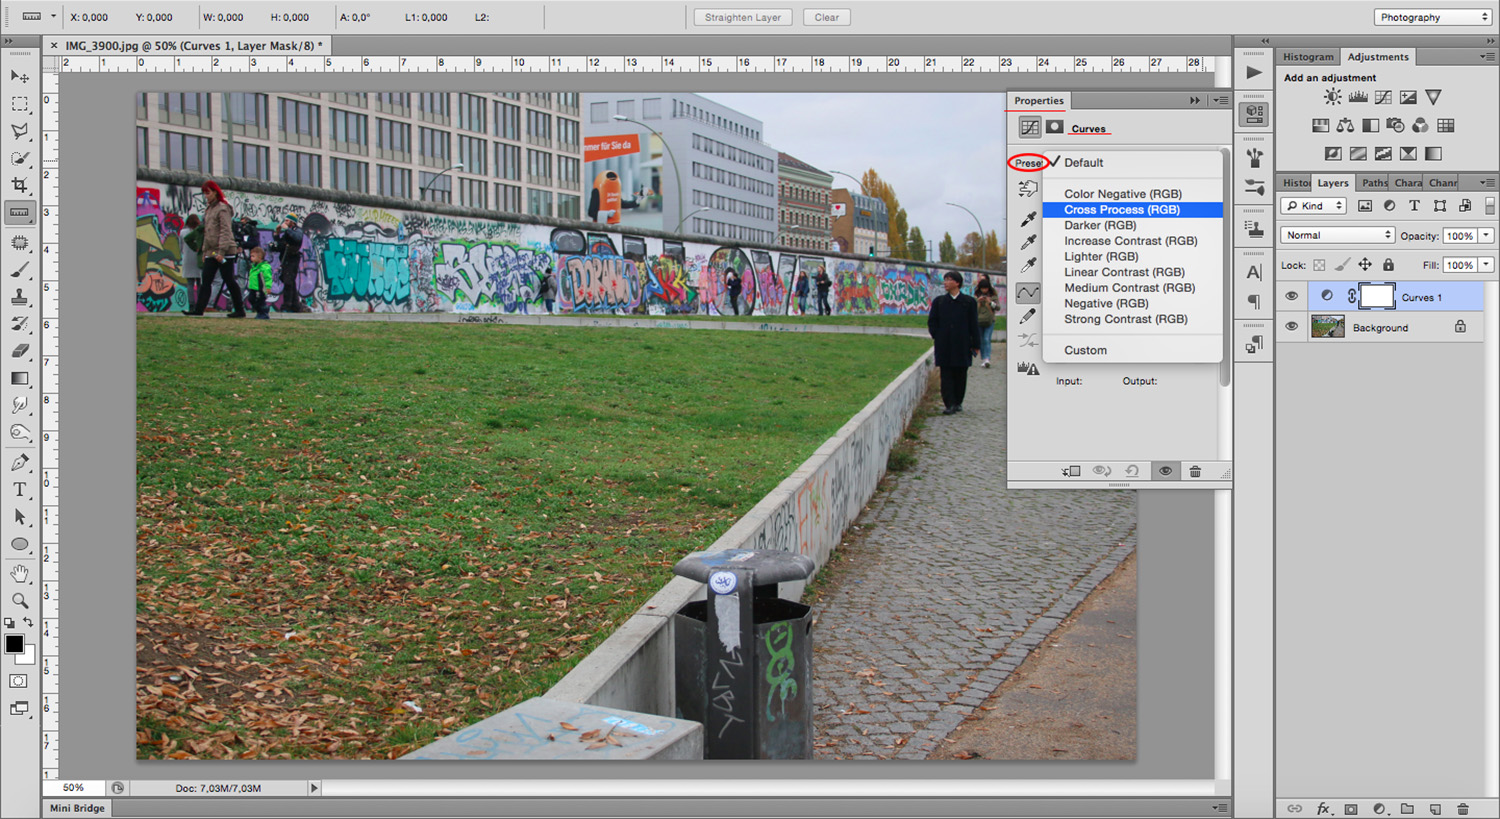 Cross Process RGB - How To Mimic a Cross-Processing Effect in Photoshop